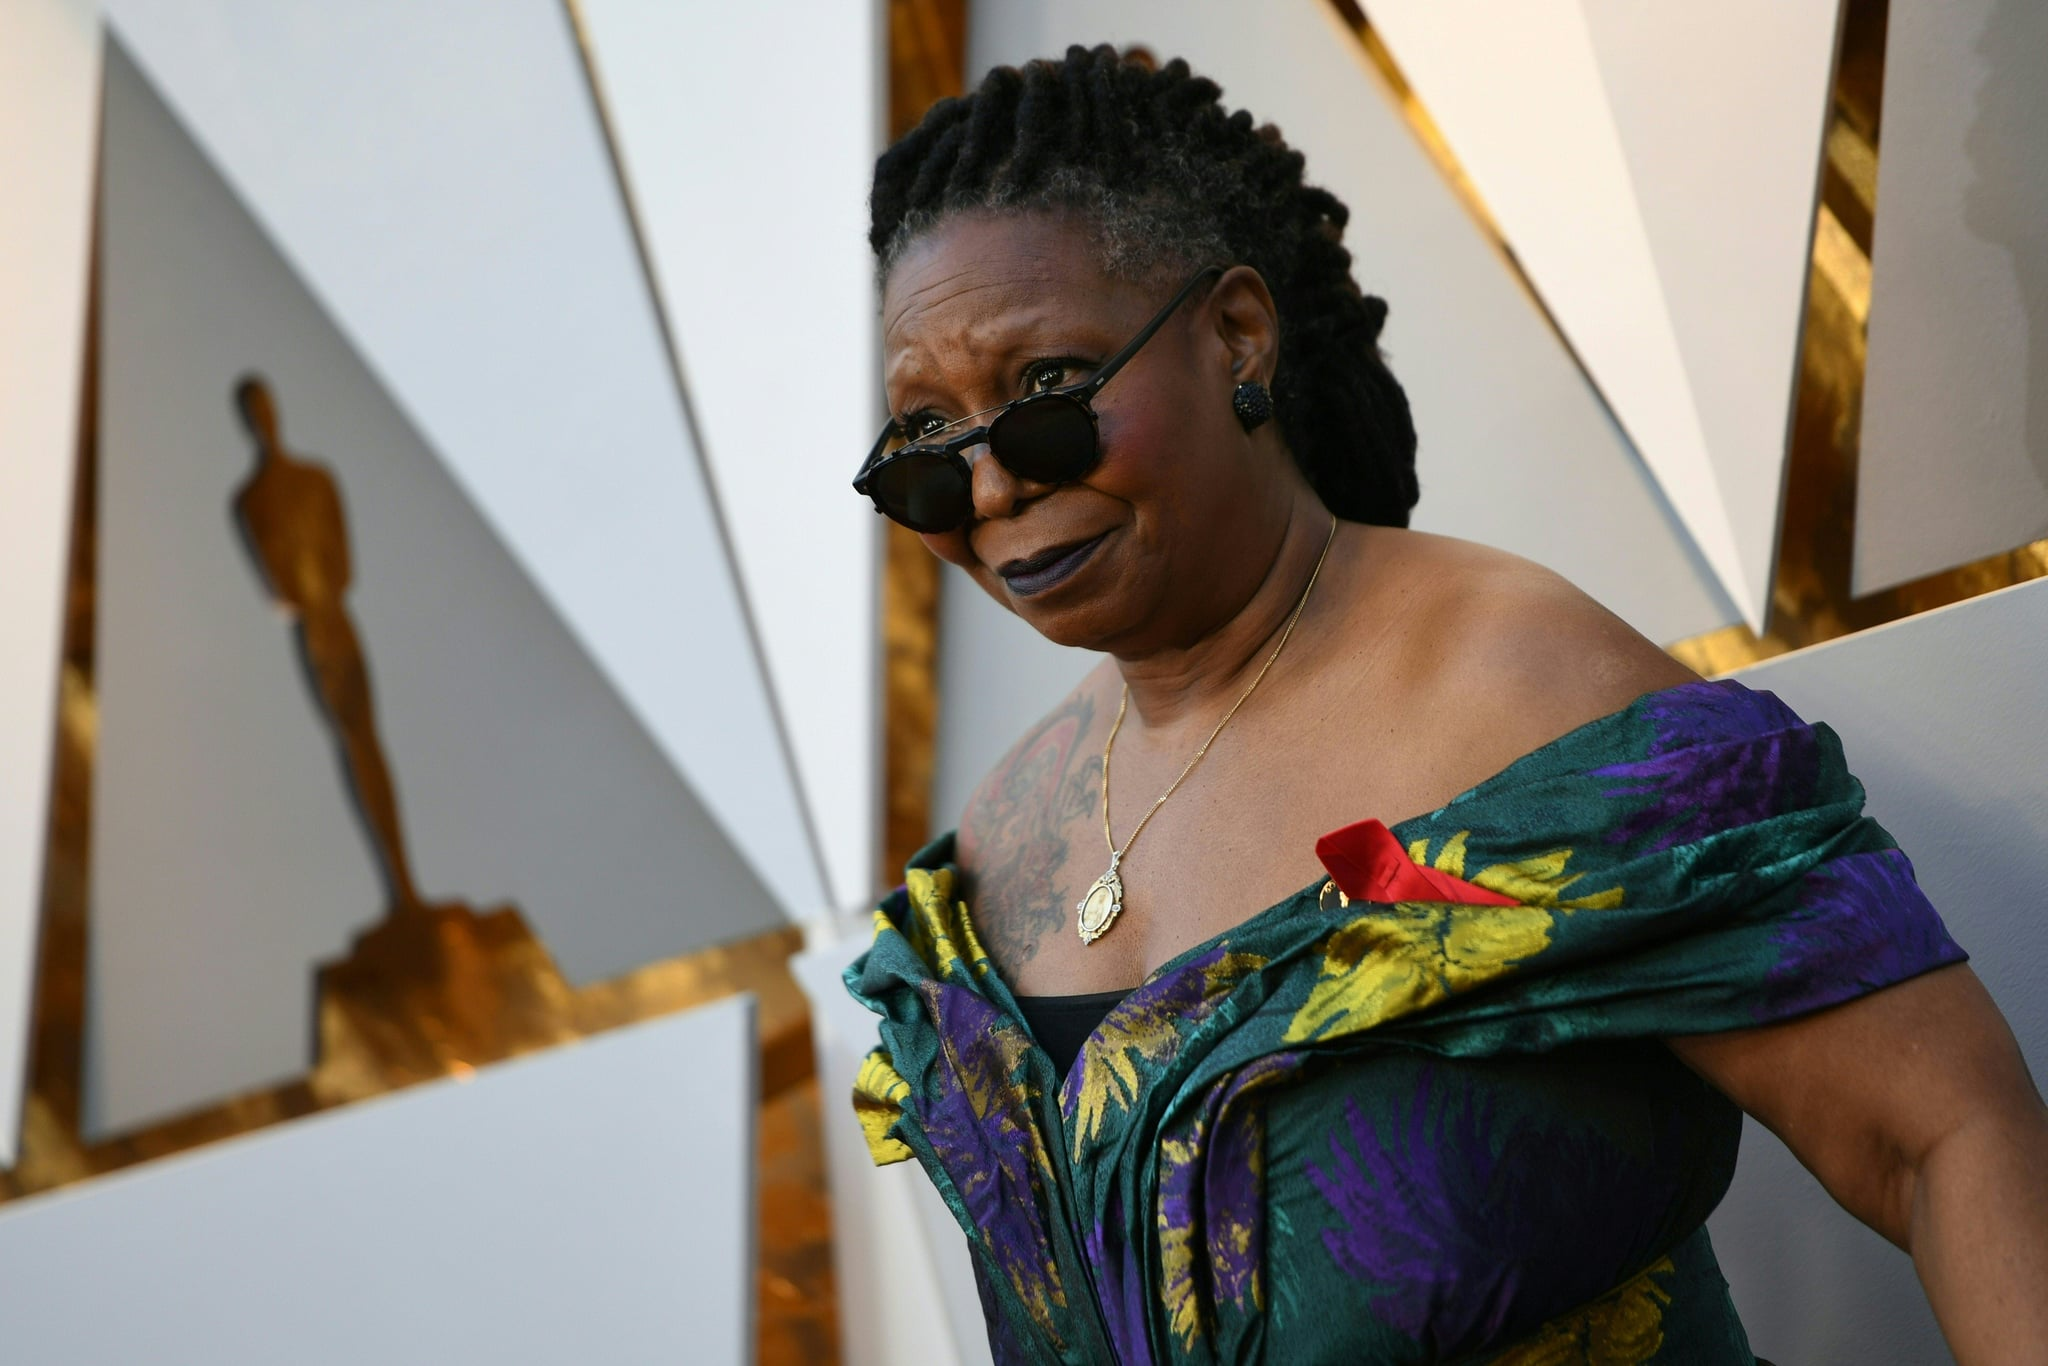 Whoopi Goldberg arrives for the 90th Annual Academy Awards on March 4, 2018, in Hollywood, California.  / AFP PHOTO / VALERIE MACON        (Photo credit should read VALERIE MACON/AFP/Getty Images)